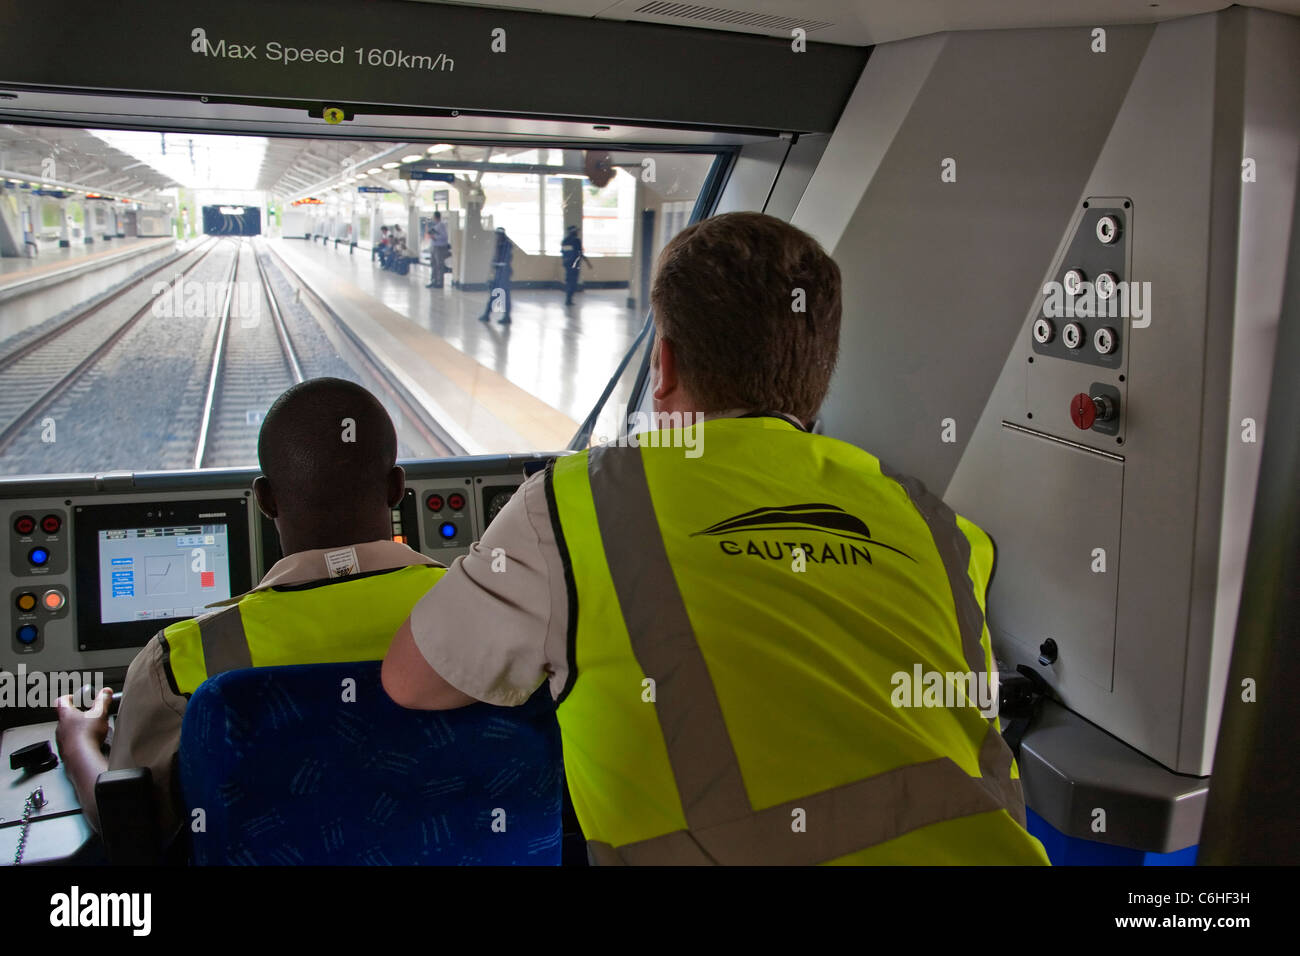 View through the cockpit of the Gautrain entering a station with a trainee driver during training - Stock Image